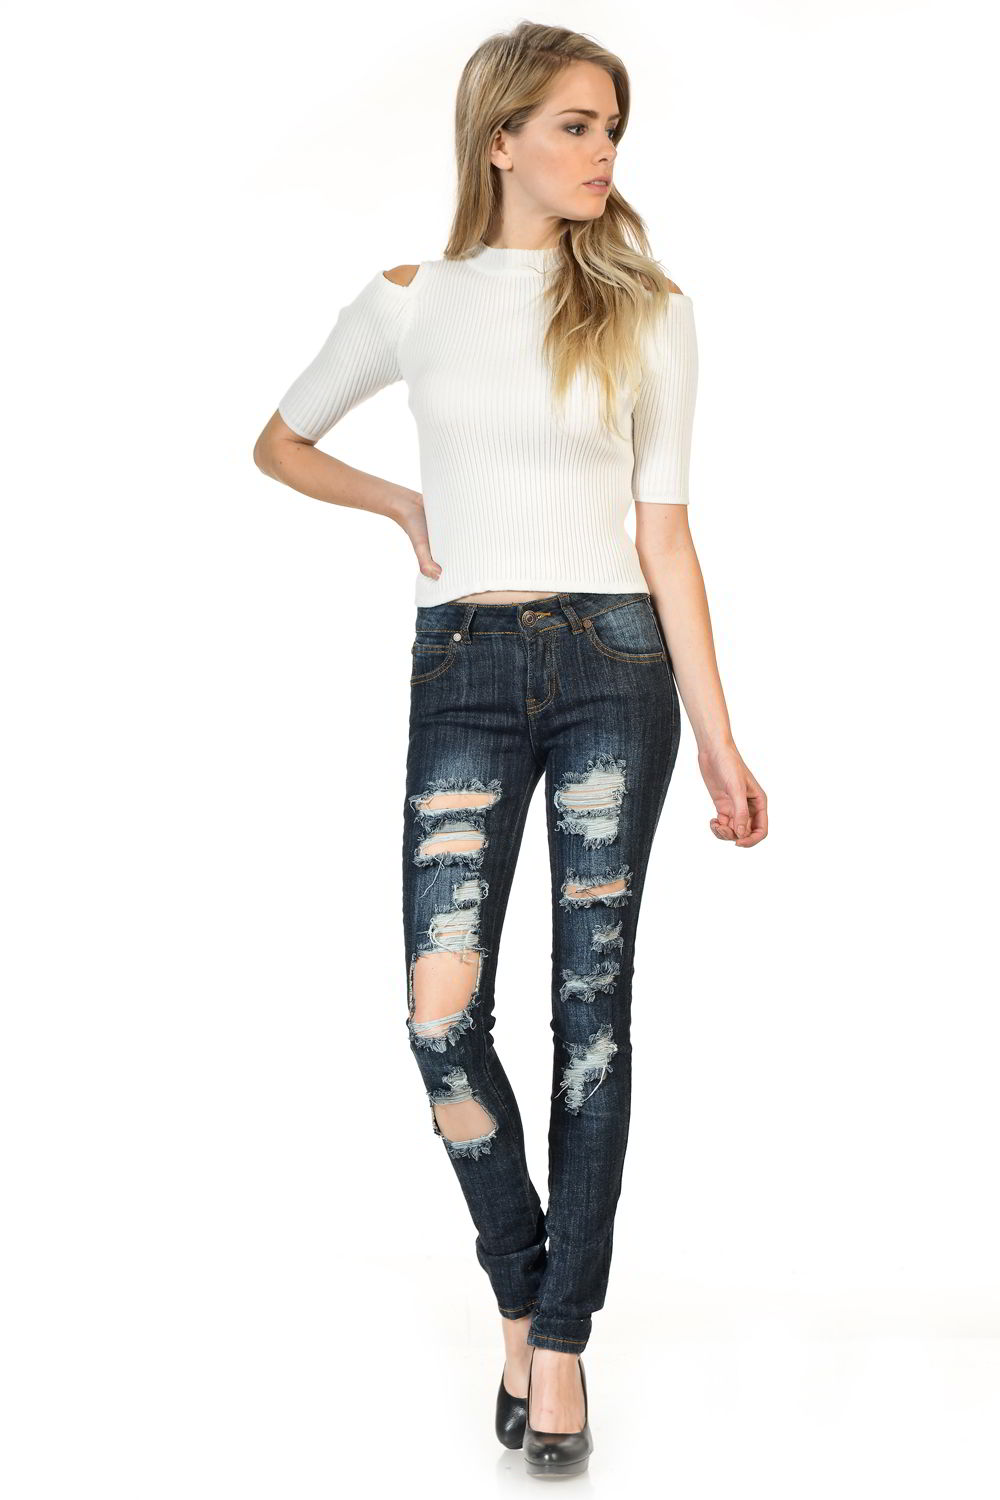 Sweet Look Premium Edition Women's Jeans - Push Up - Style WY5025B-R